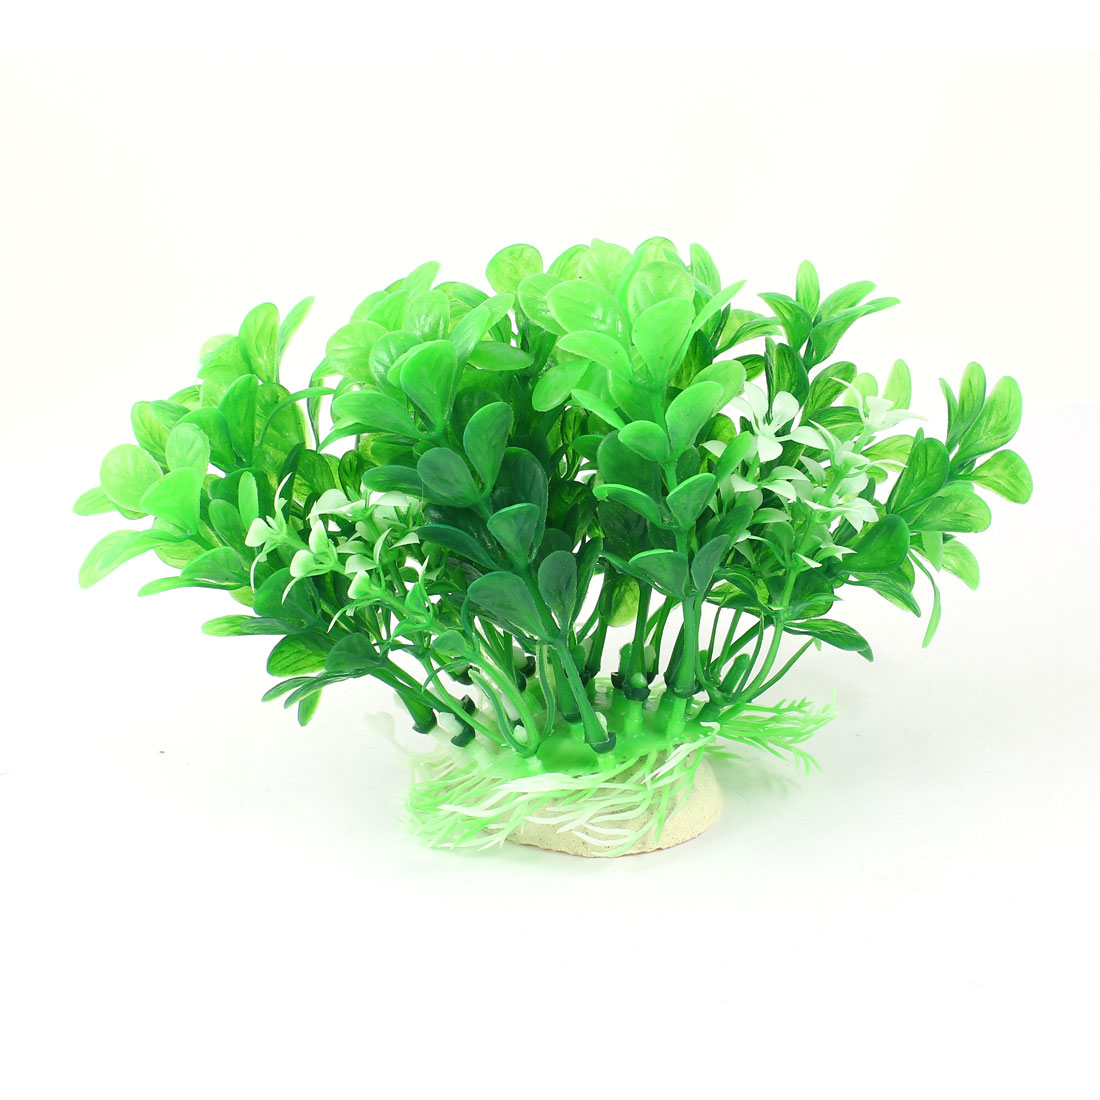 "Aquarium Fish Tank Ornament Landscaping Artificial Emulational Underwater Water Plant Grass Decor Green 4"" Height"